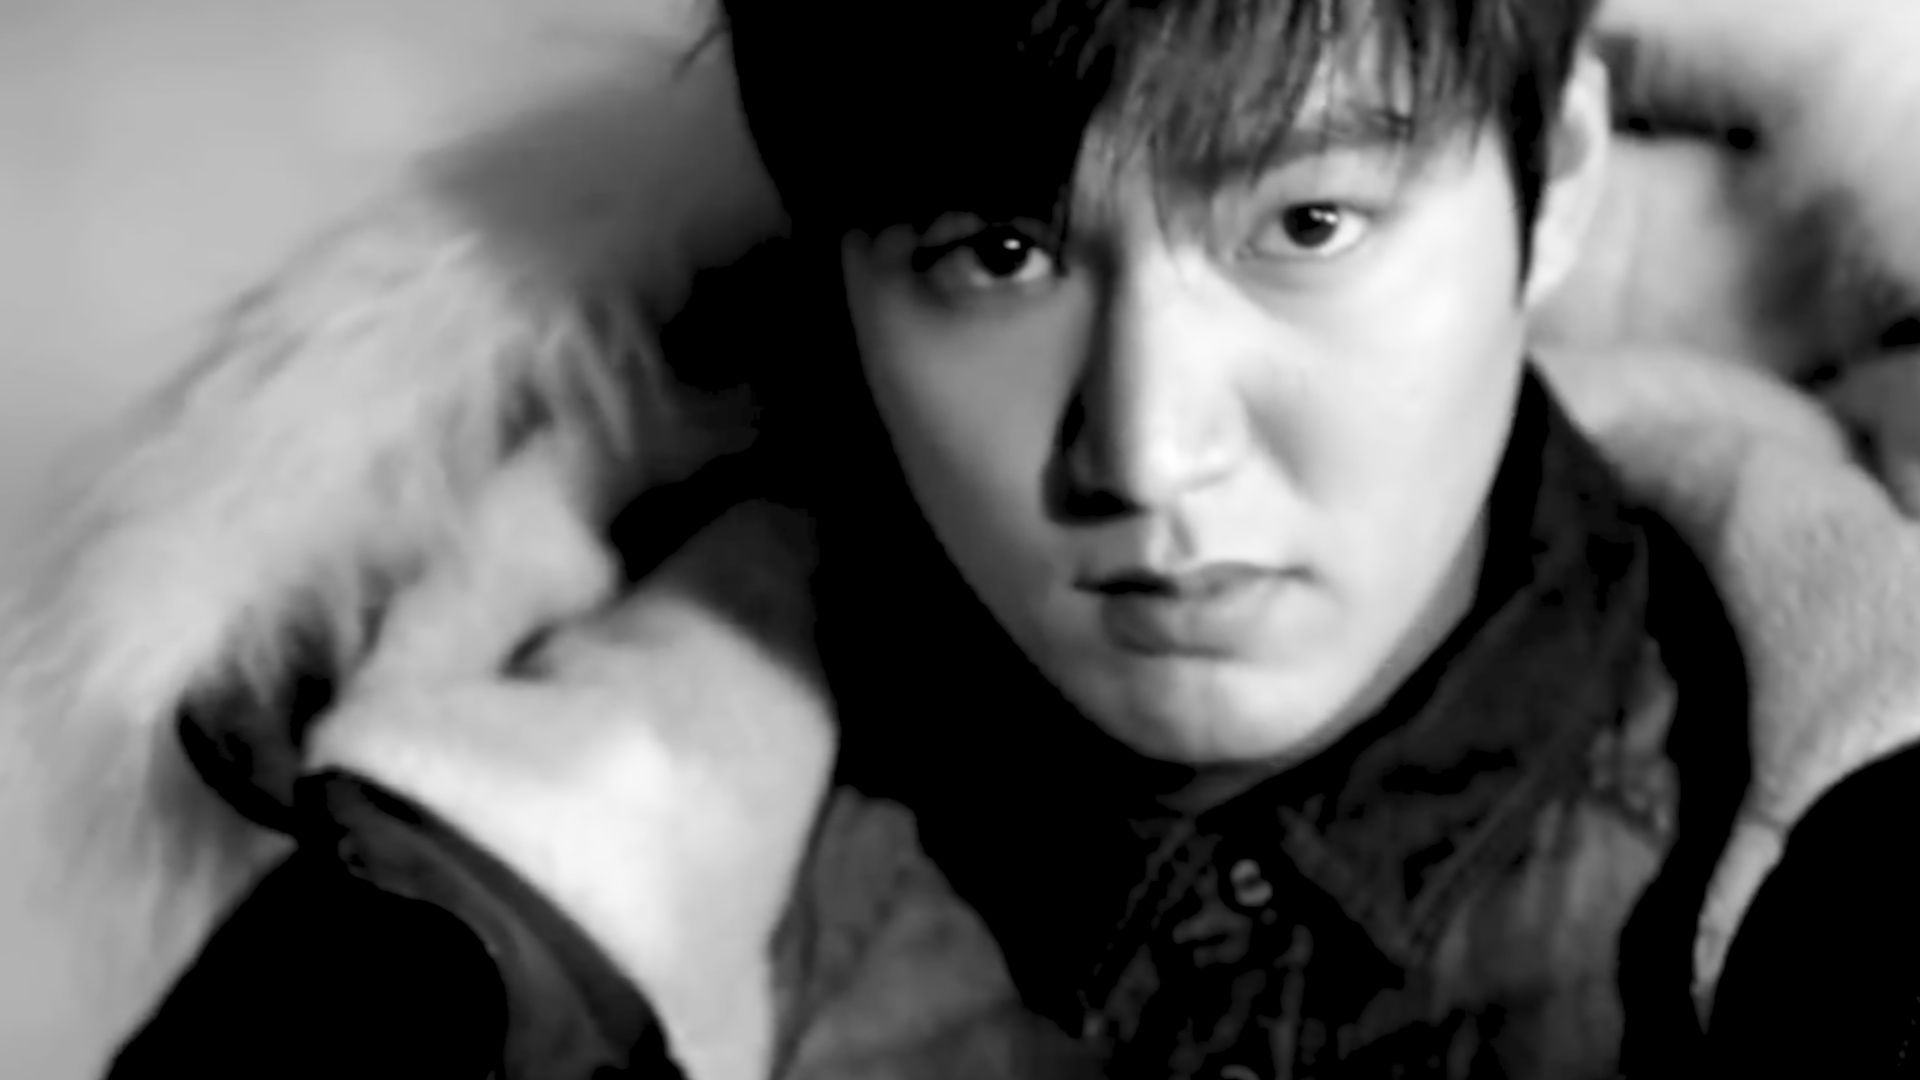 [HD] Lee Min Ho 2014 SOME JEANS, GUESS FW Collection Making FilmStill020